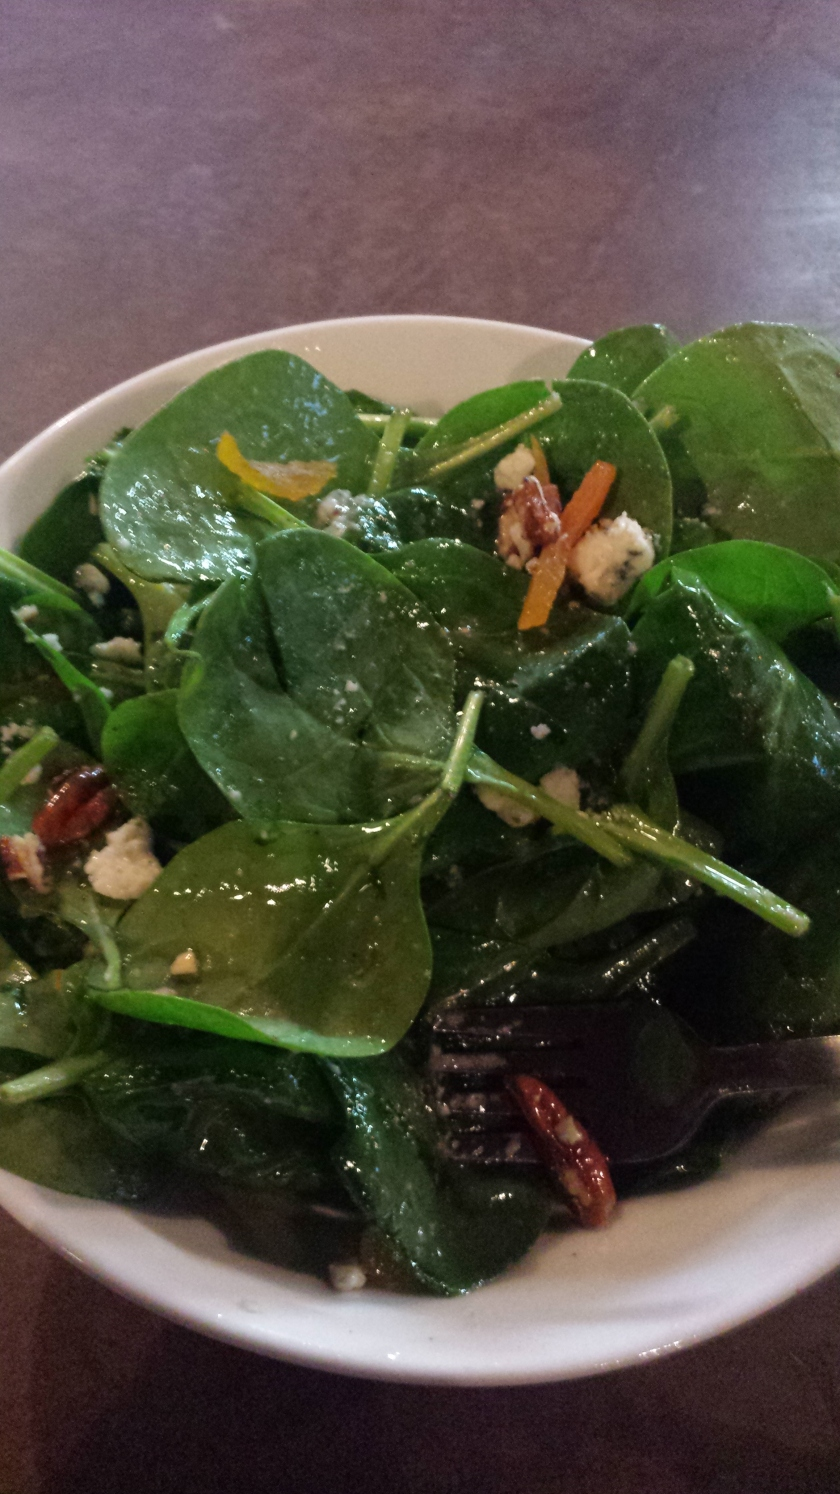 Spinach salad at Grand River Marketplace